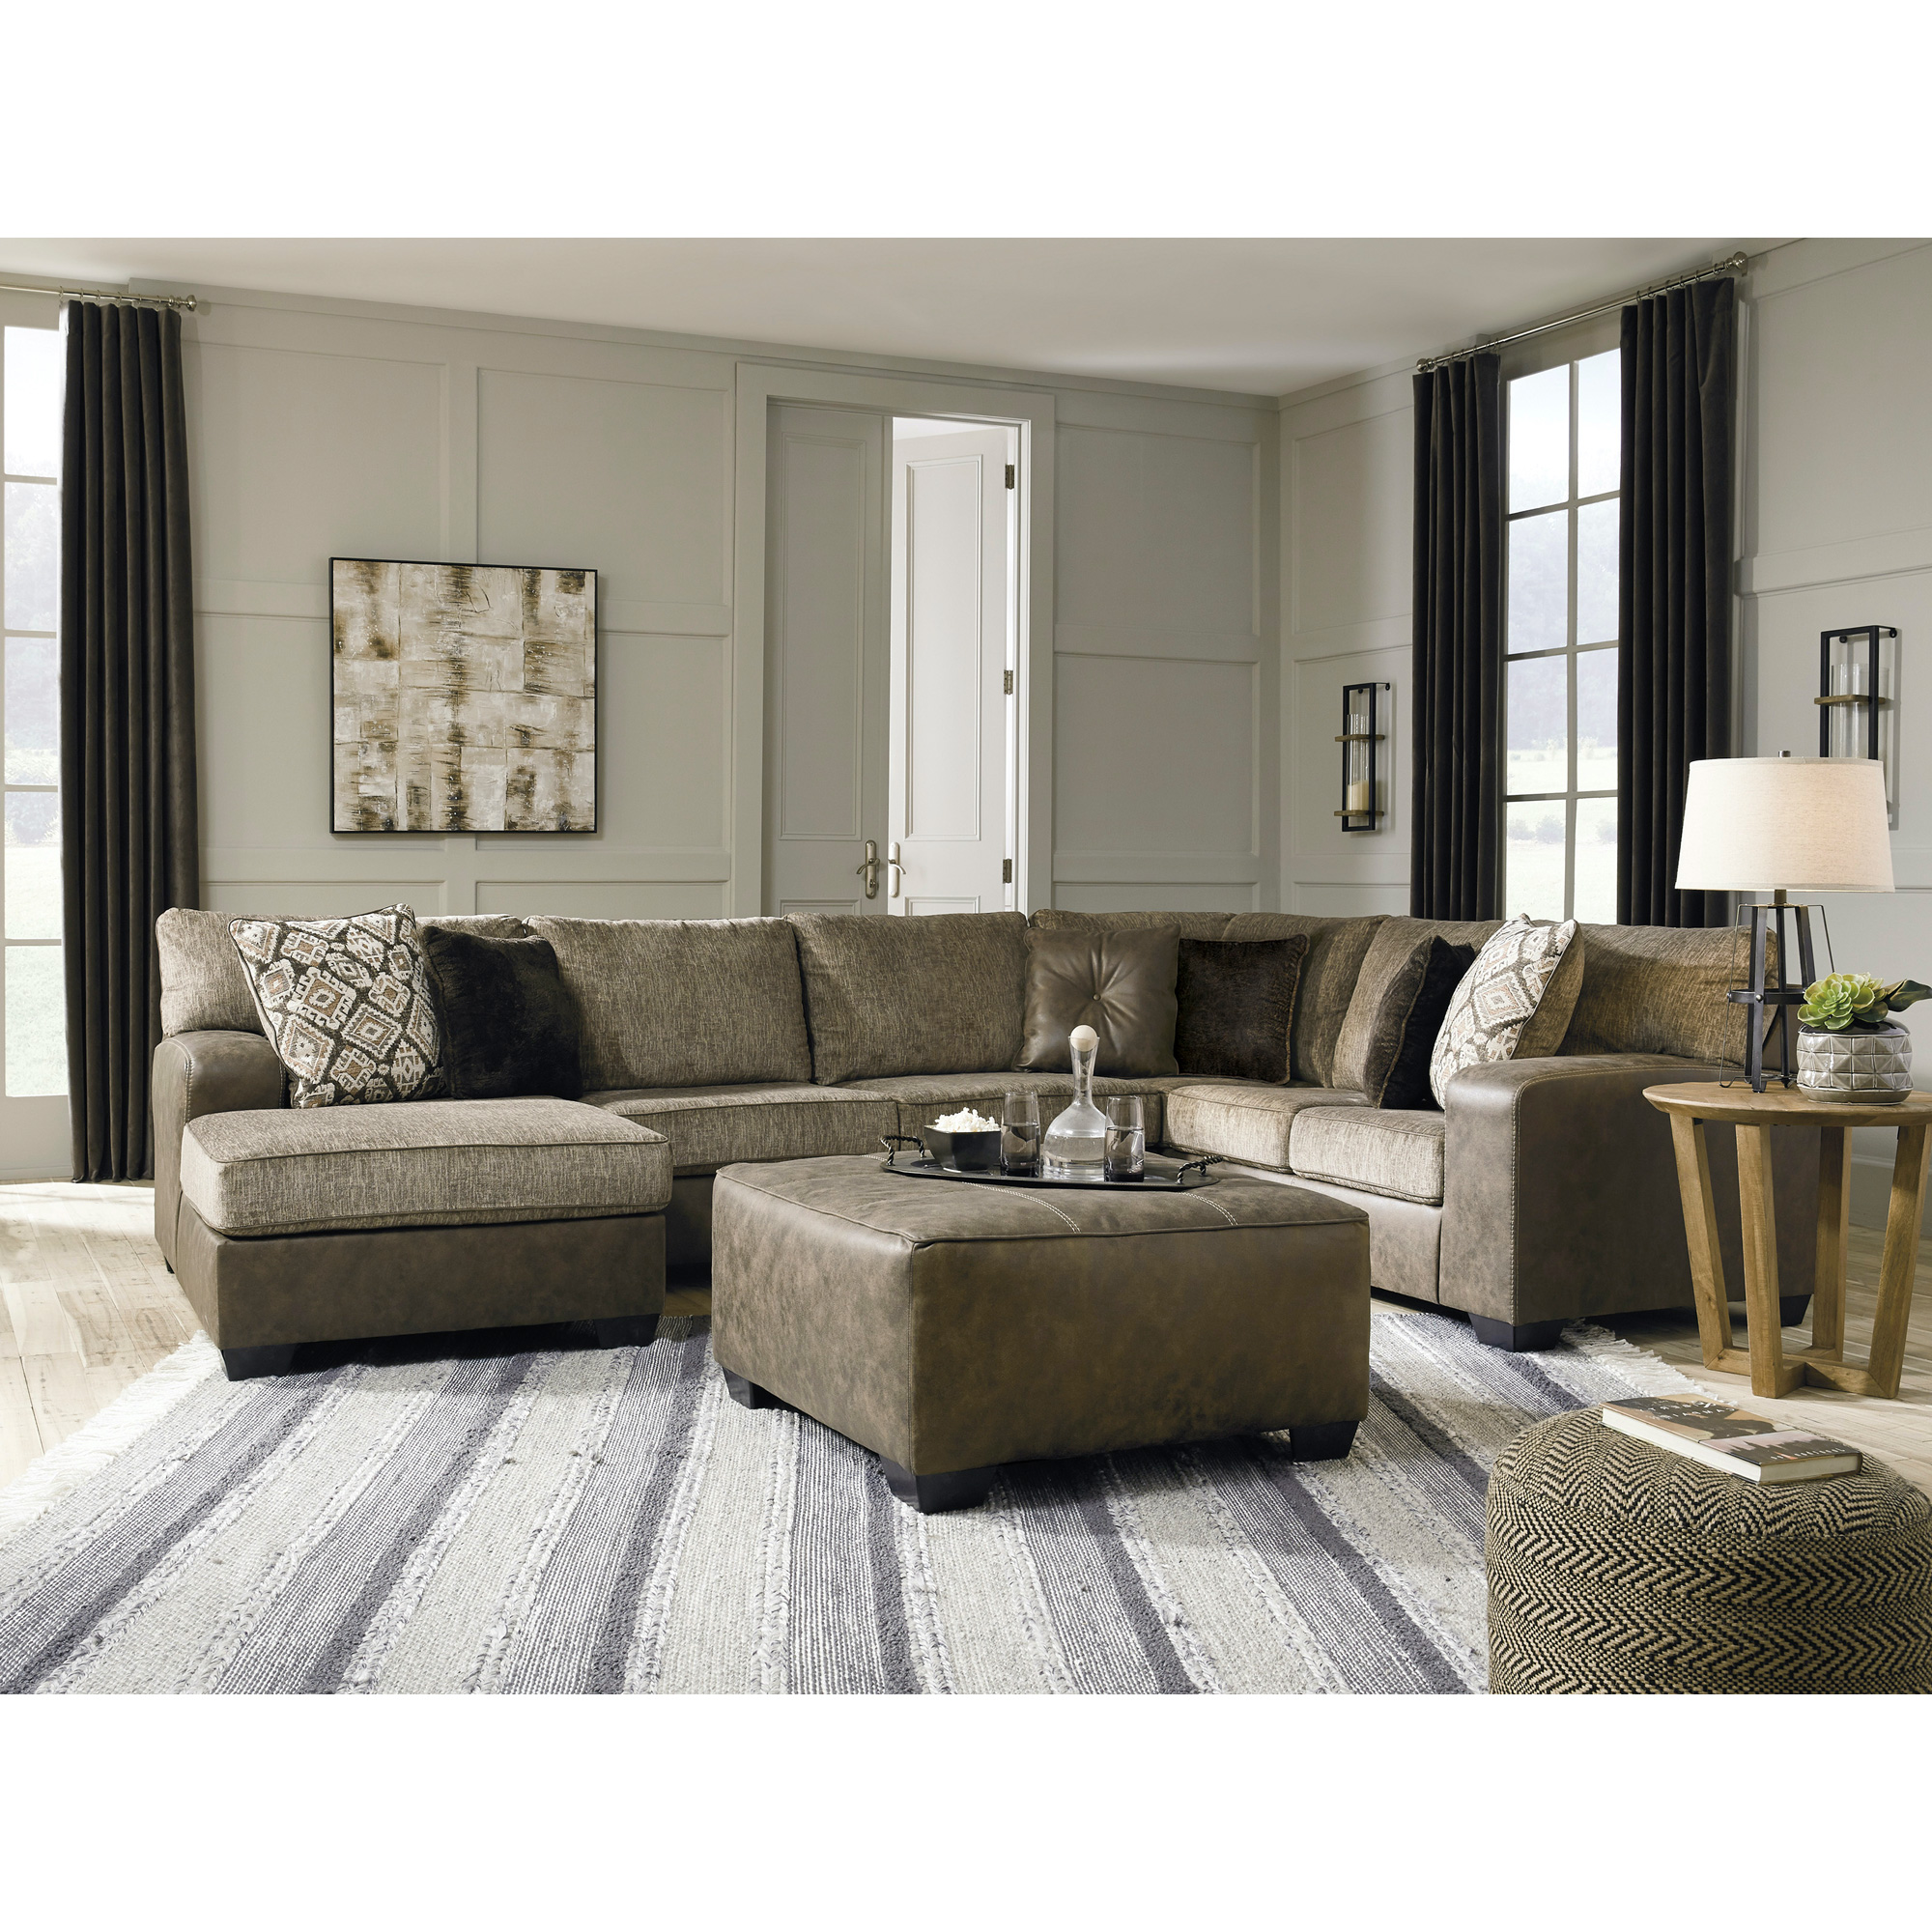 Ashley Furniture | Abalone Chocolate Left Chaise Sectional Sofa